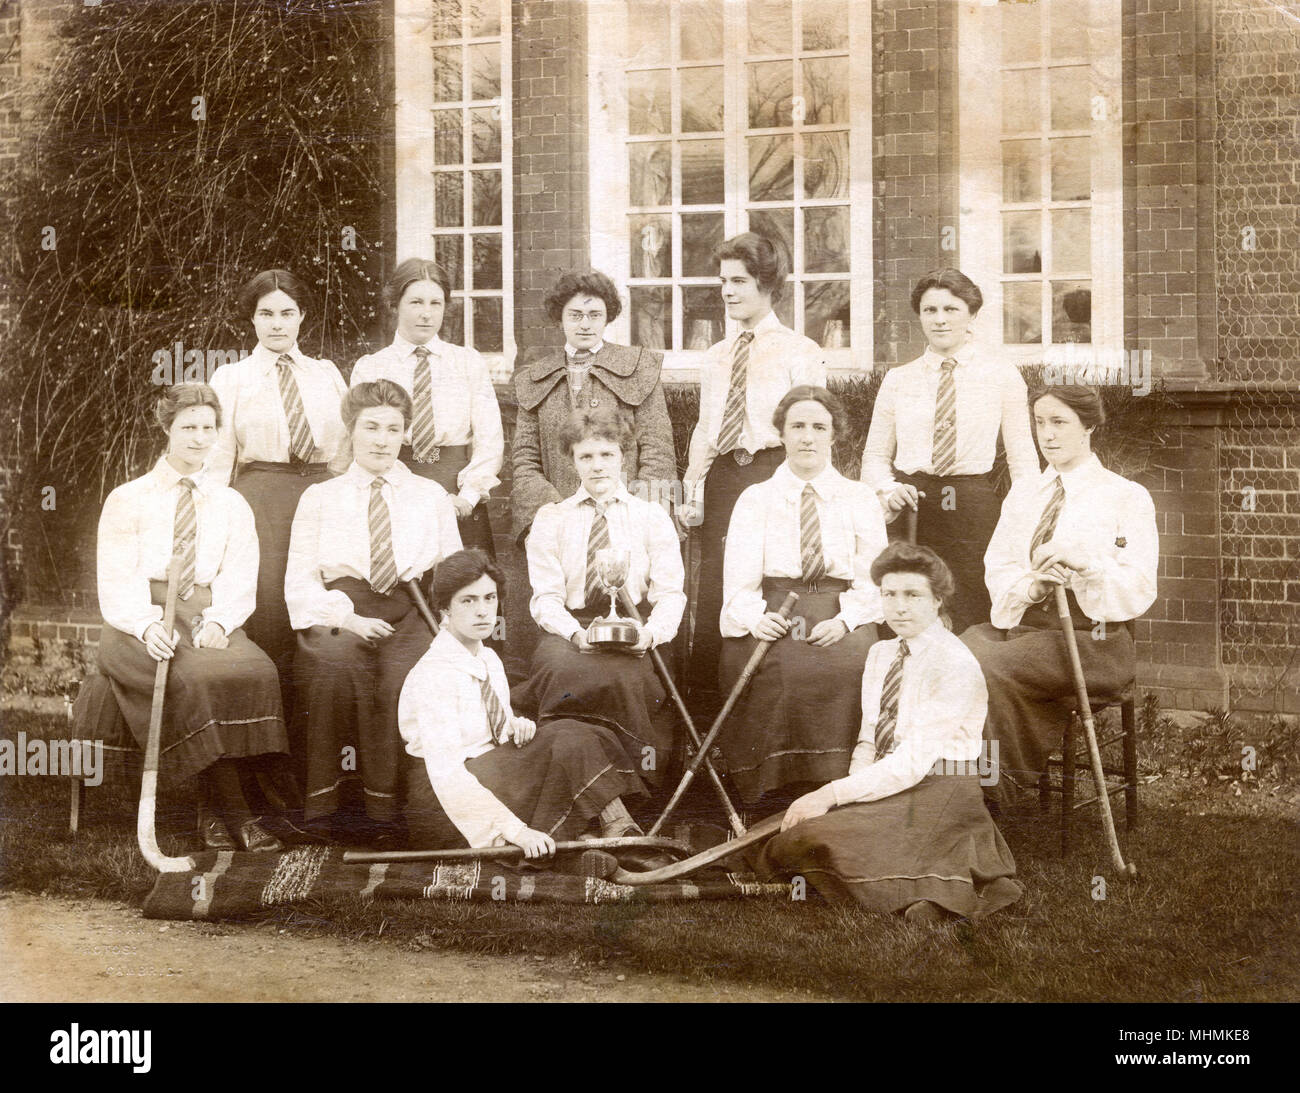 A photograph of the Newnham College, Cambridge ladies hockey team; the captain sits in the centre with a trophy.       Date: 1904 - Stock Image